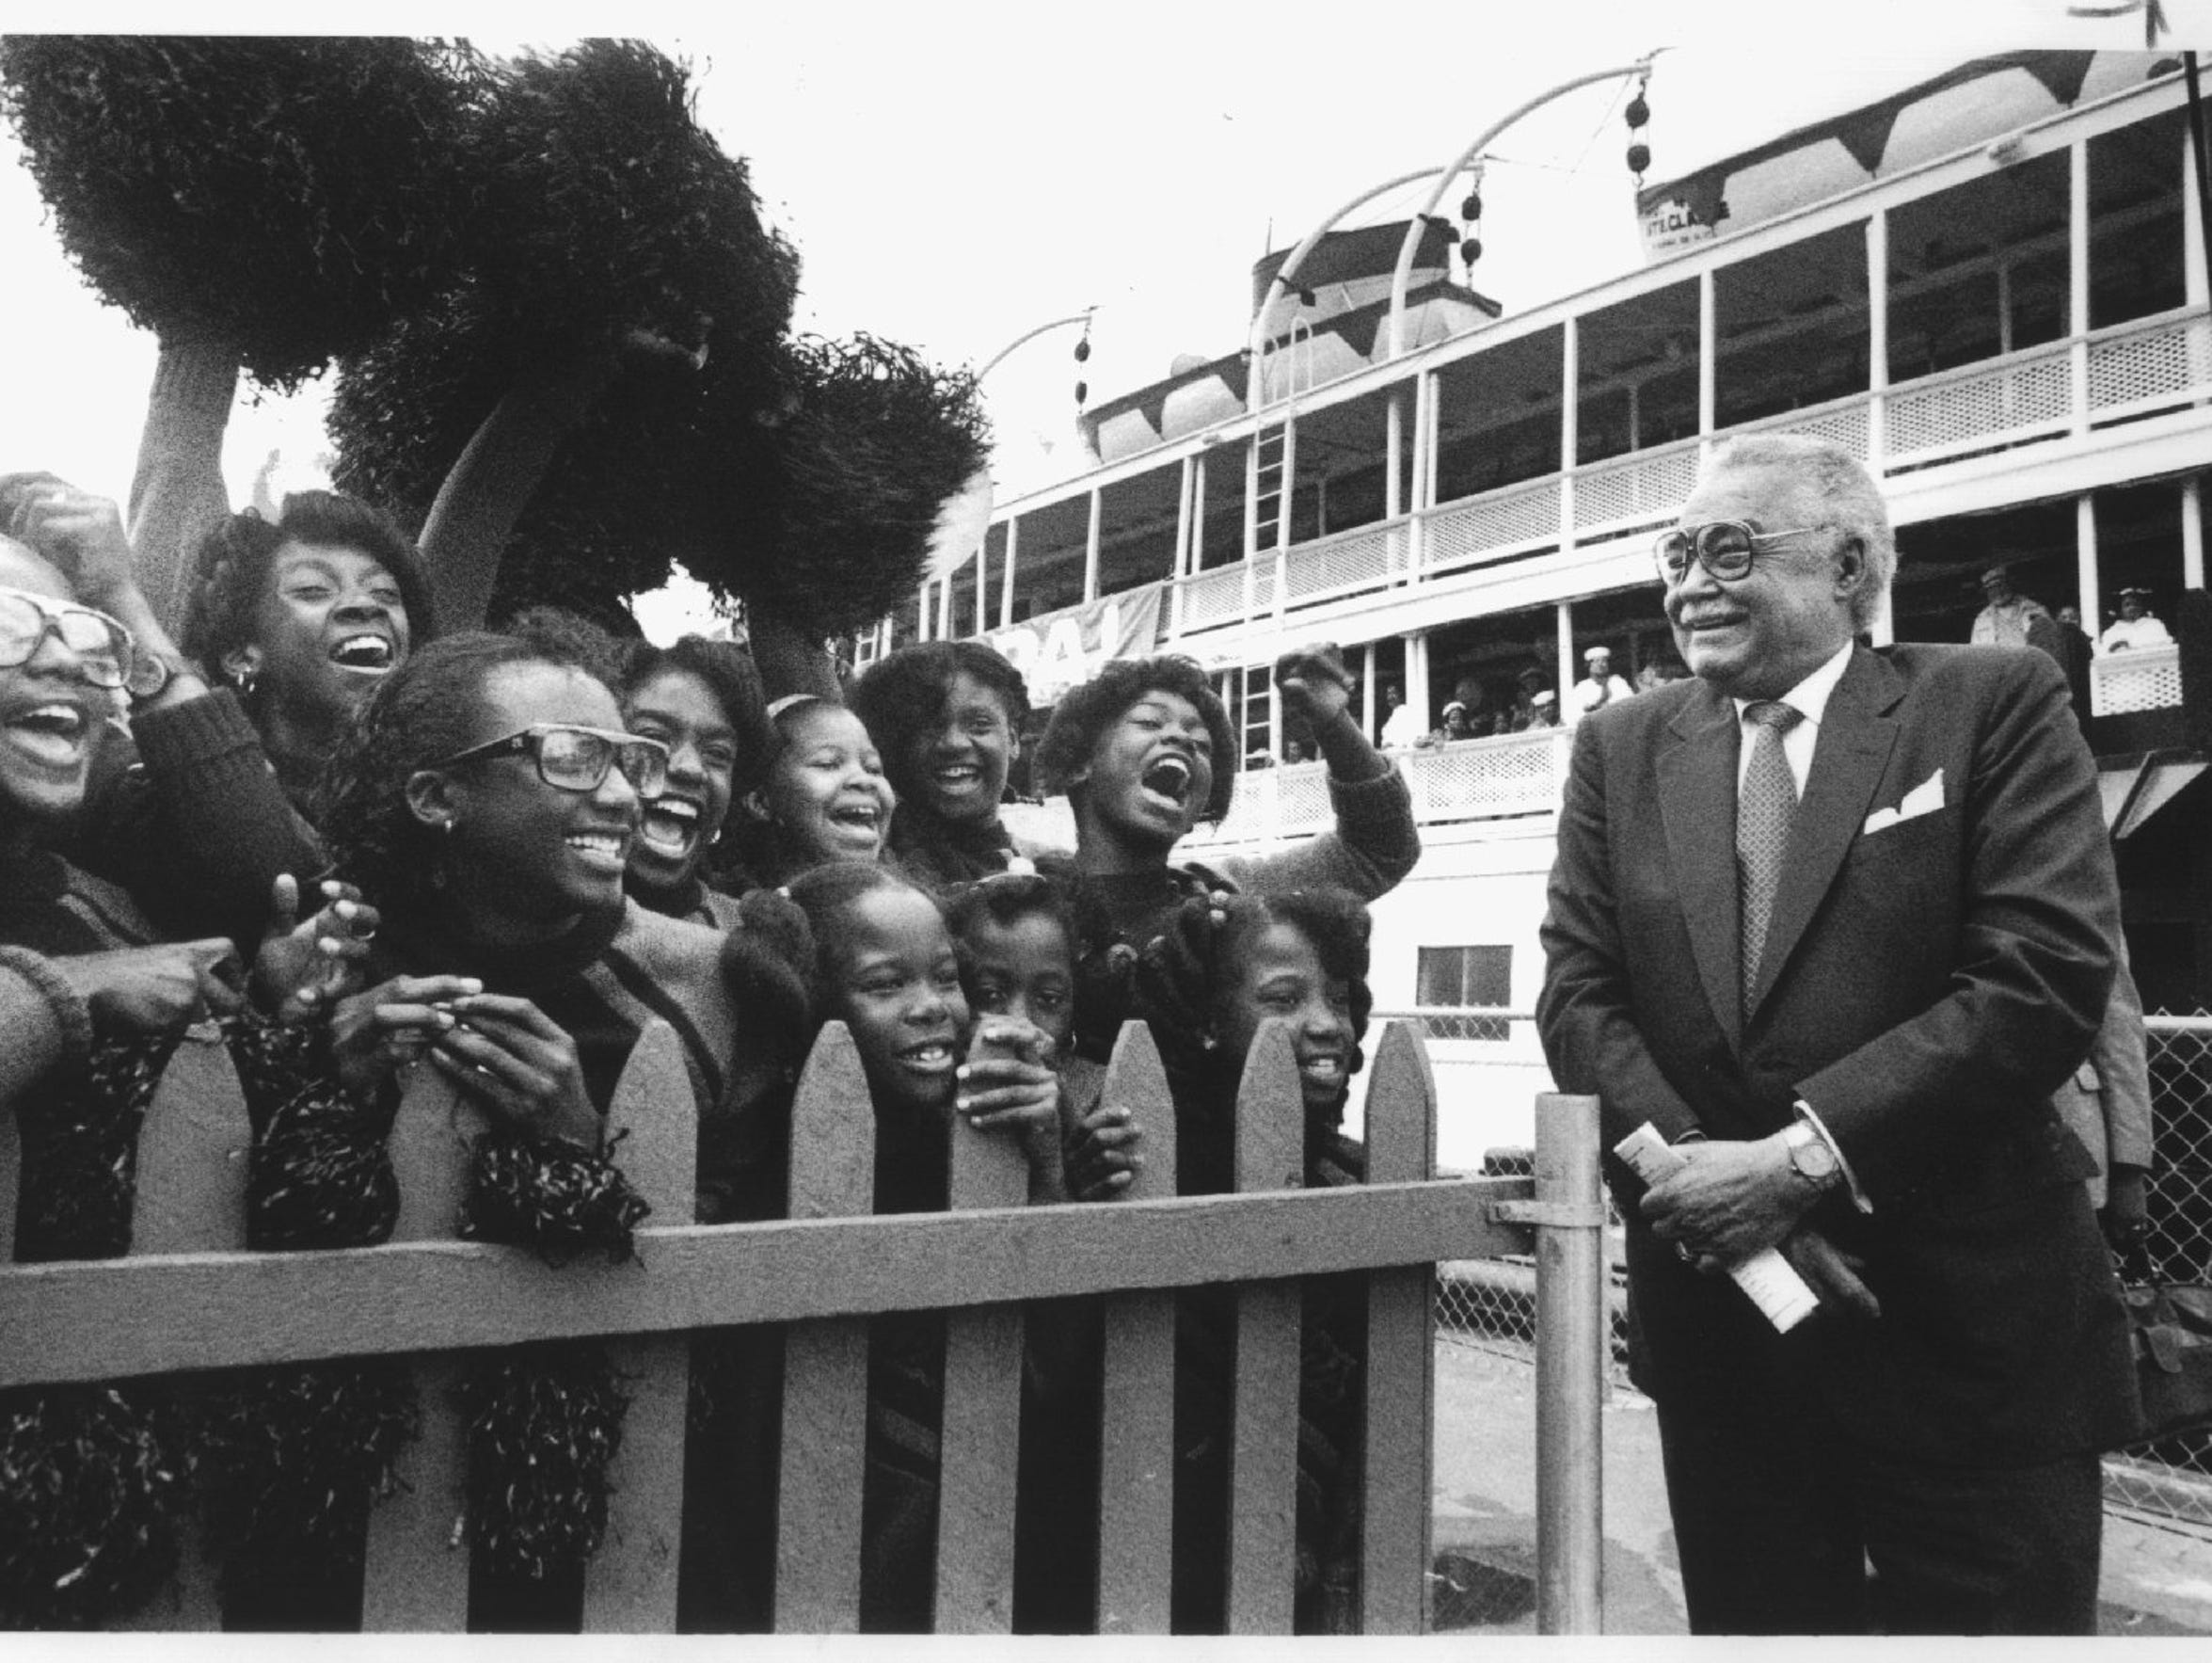 Detroit mayor Coleman Young near the Boblo boat in